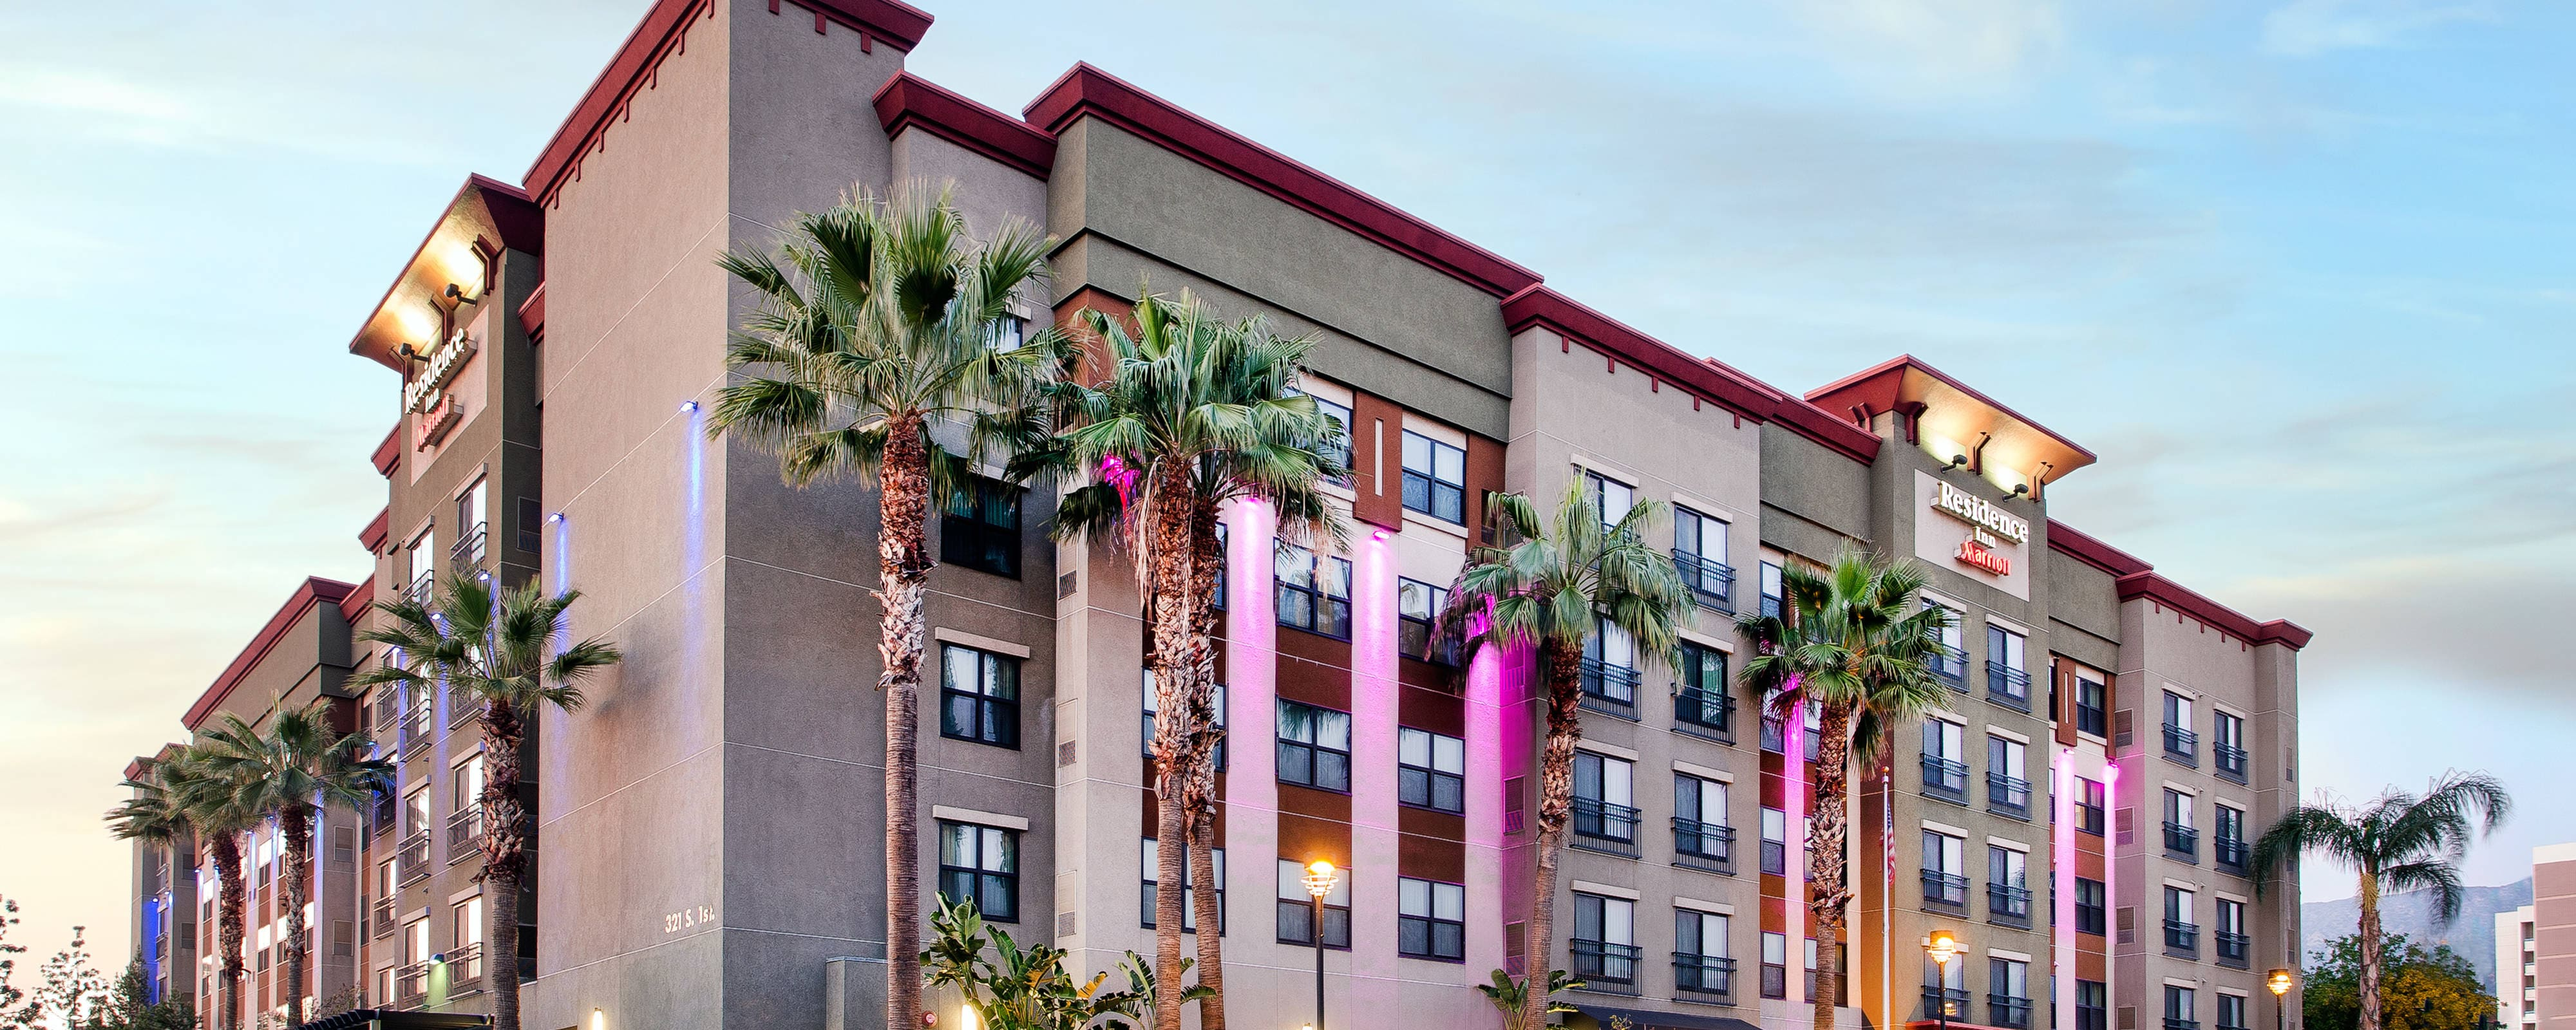 Burbank California Hotels Residence Inn Los Angeles